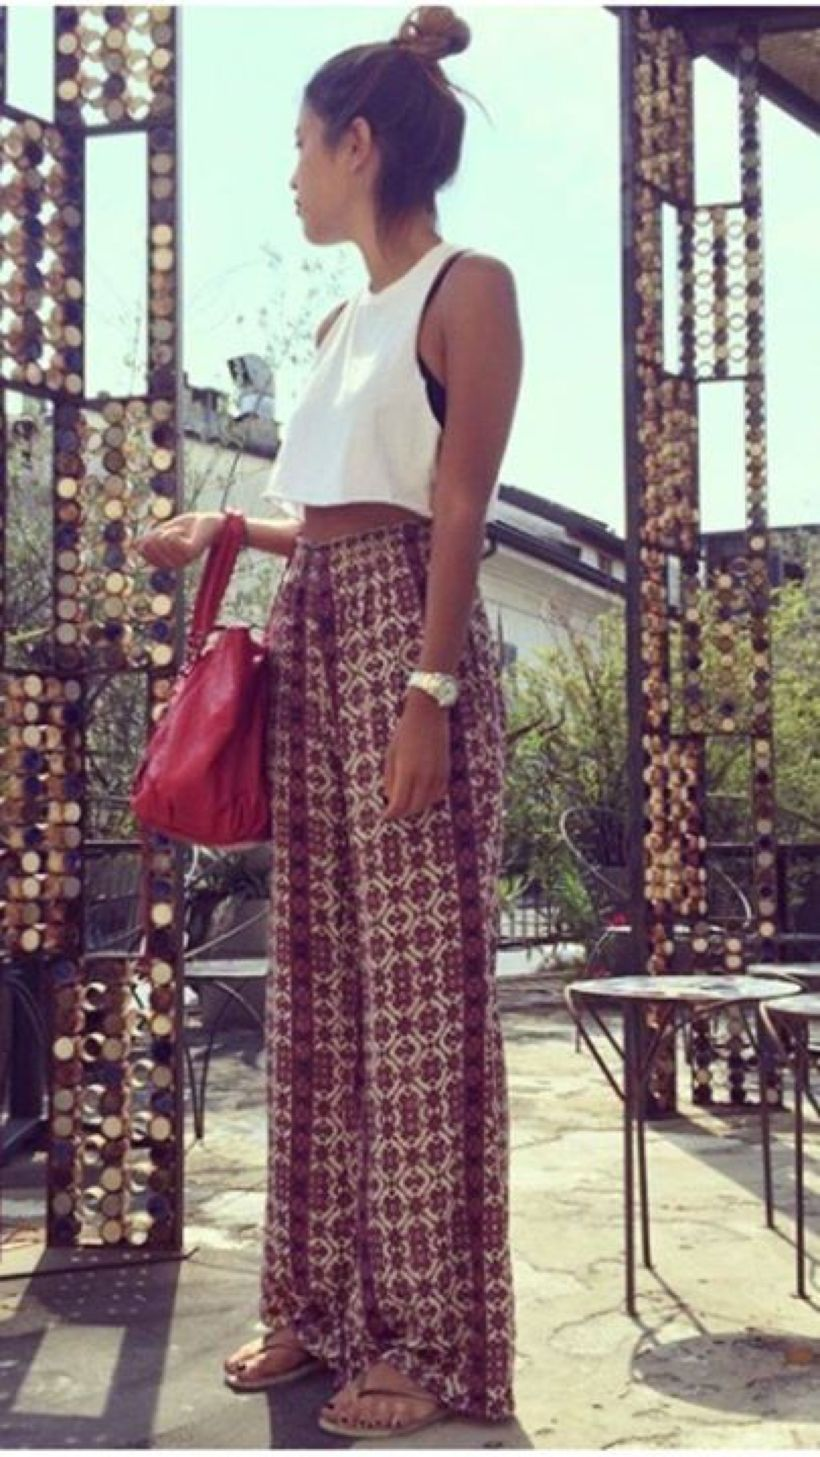 Vintage chic fashion outfits ideas 23